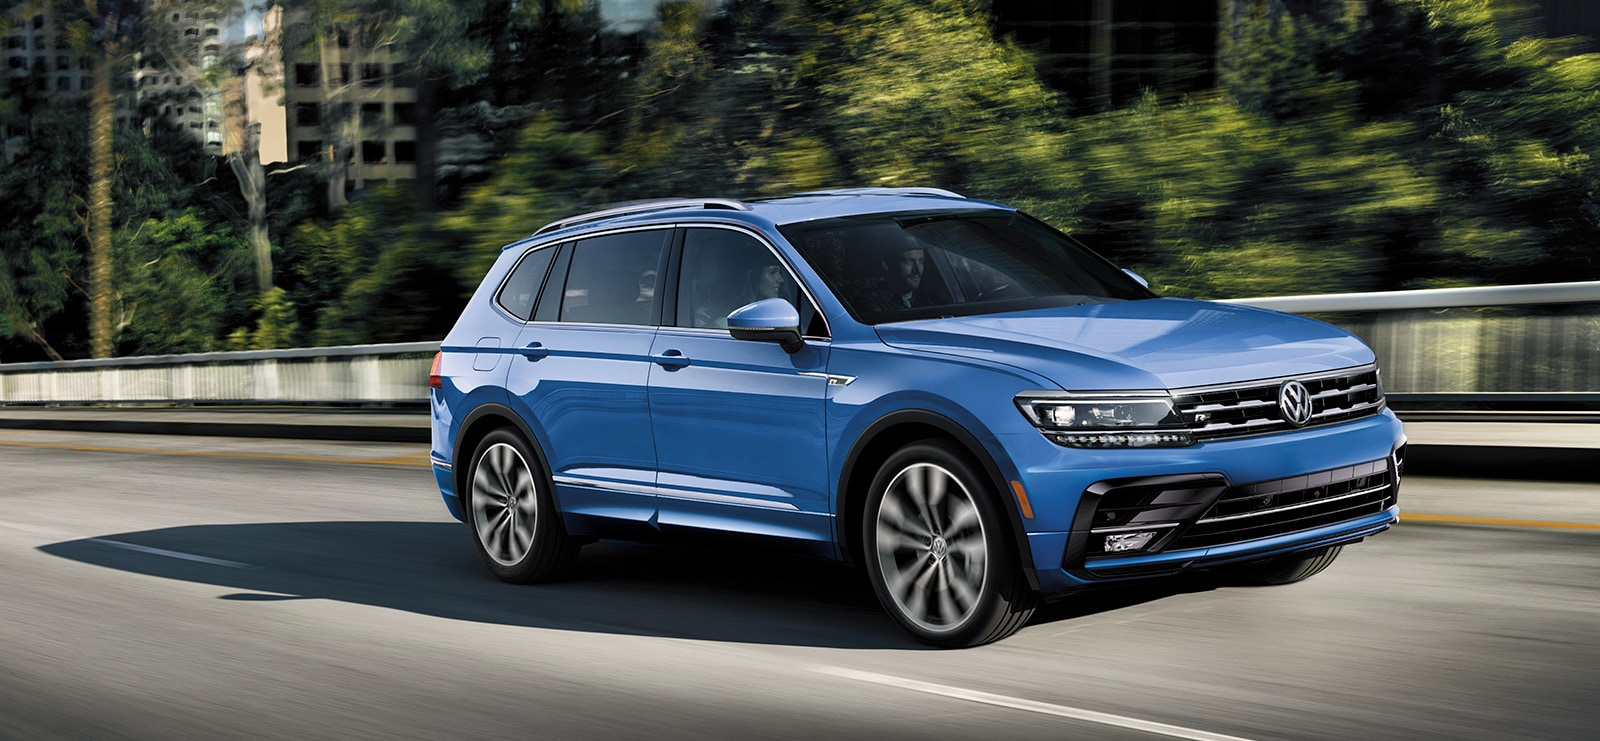 2020 Volkswagen Tiguan horsepower vs the competition